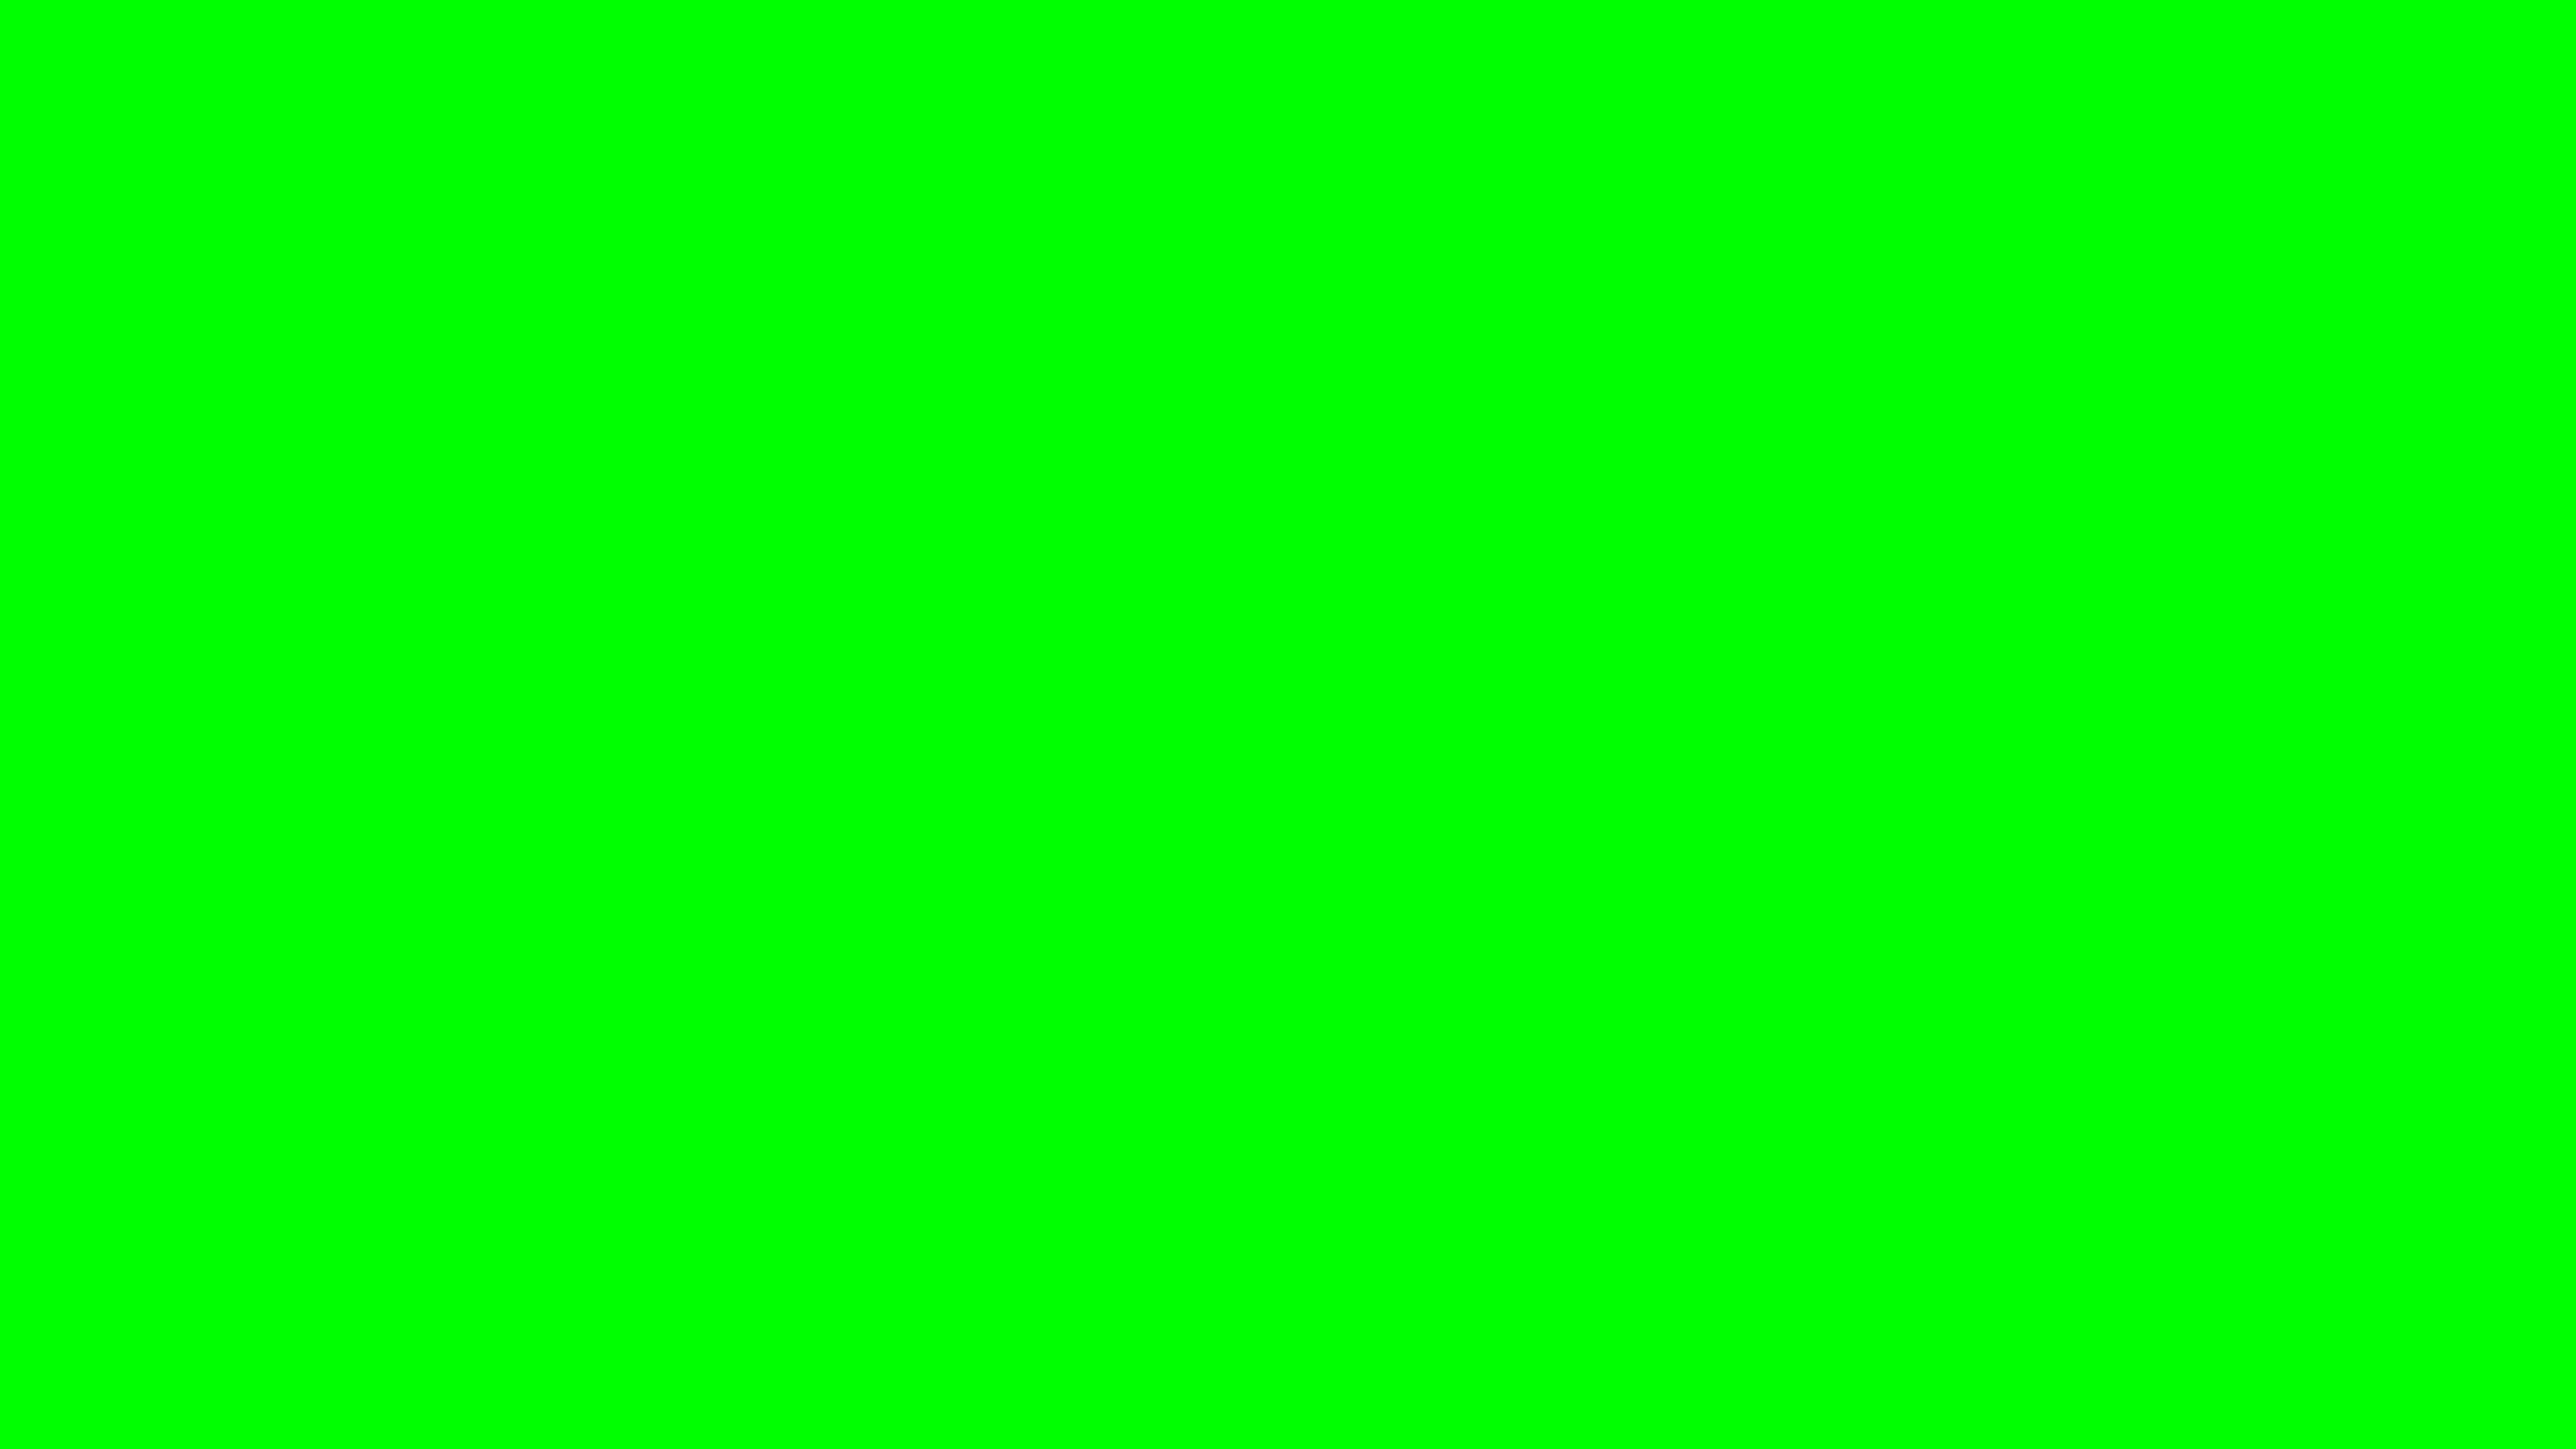 3840x2160 Lime Web Green Solid Color Background